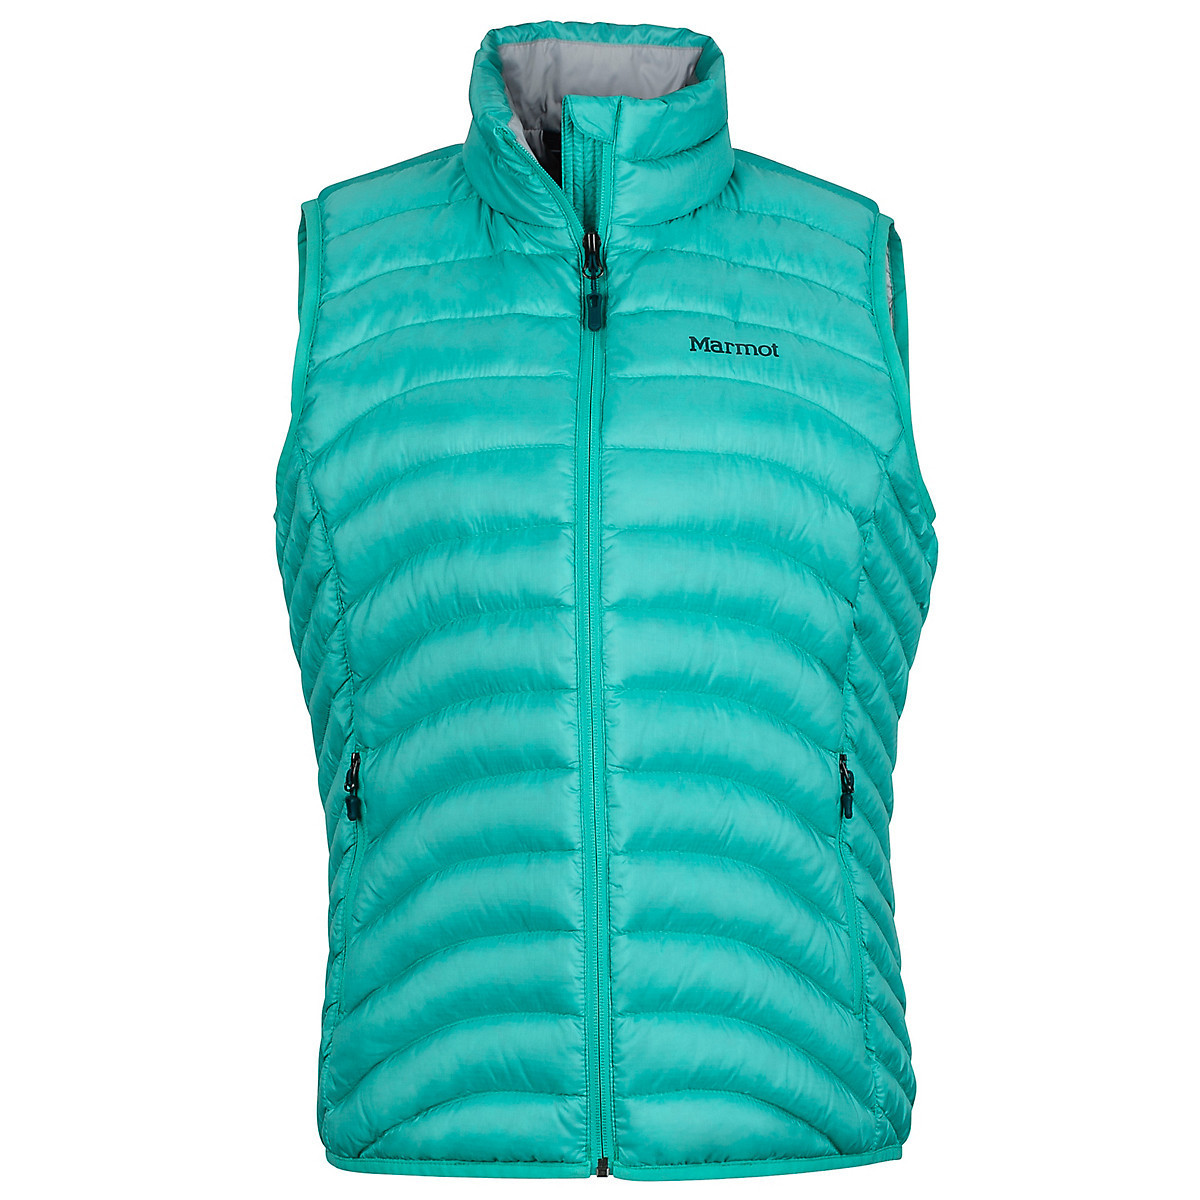 Marmot Women's Aruna Vest - Green, XL